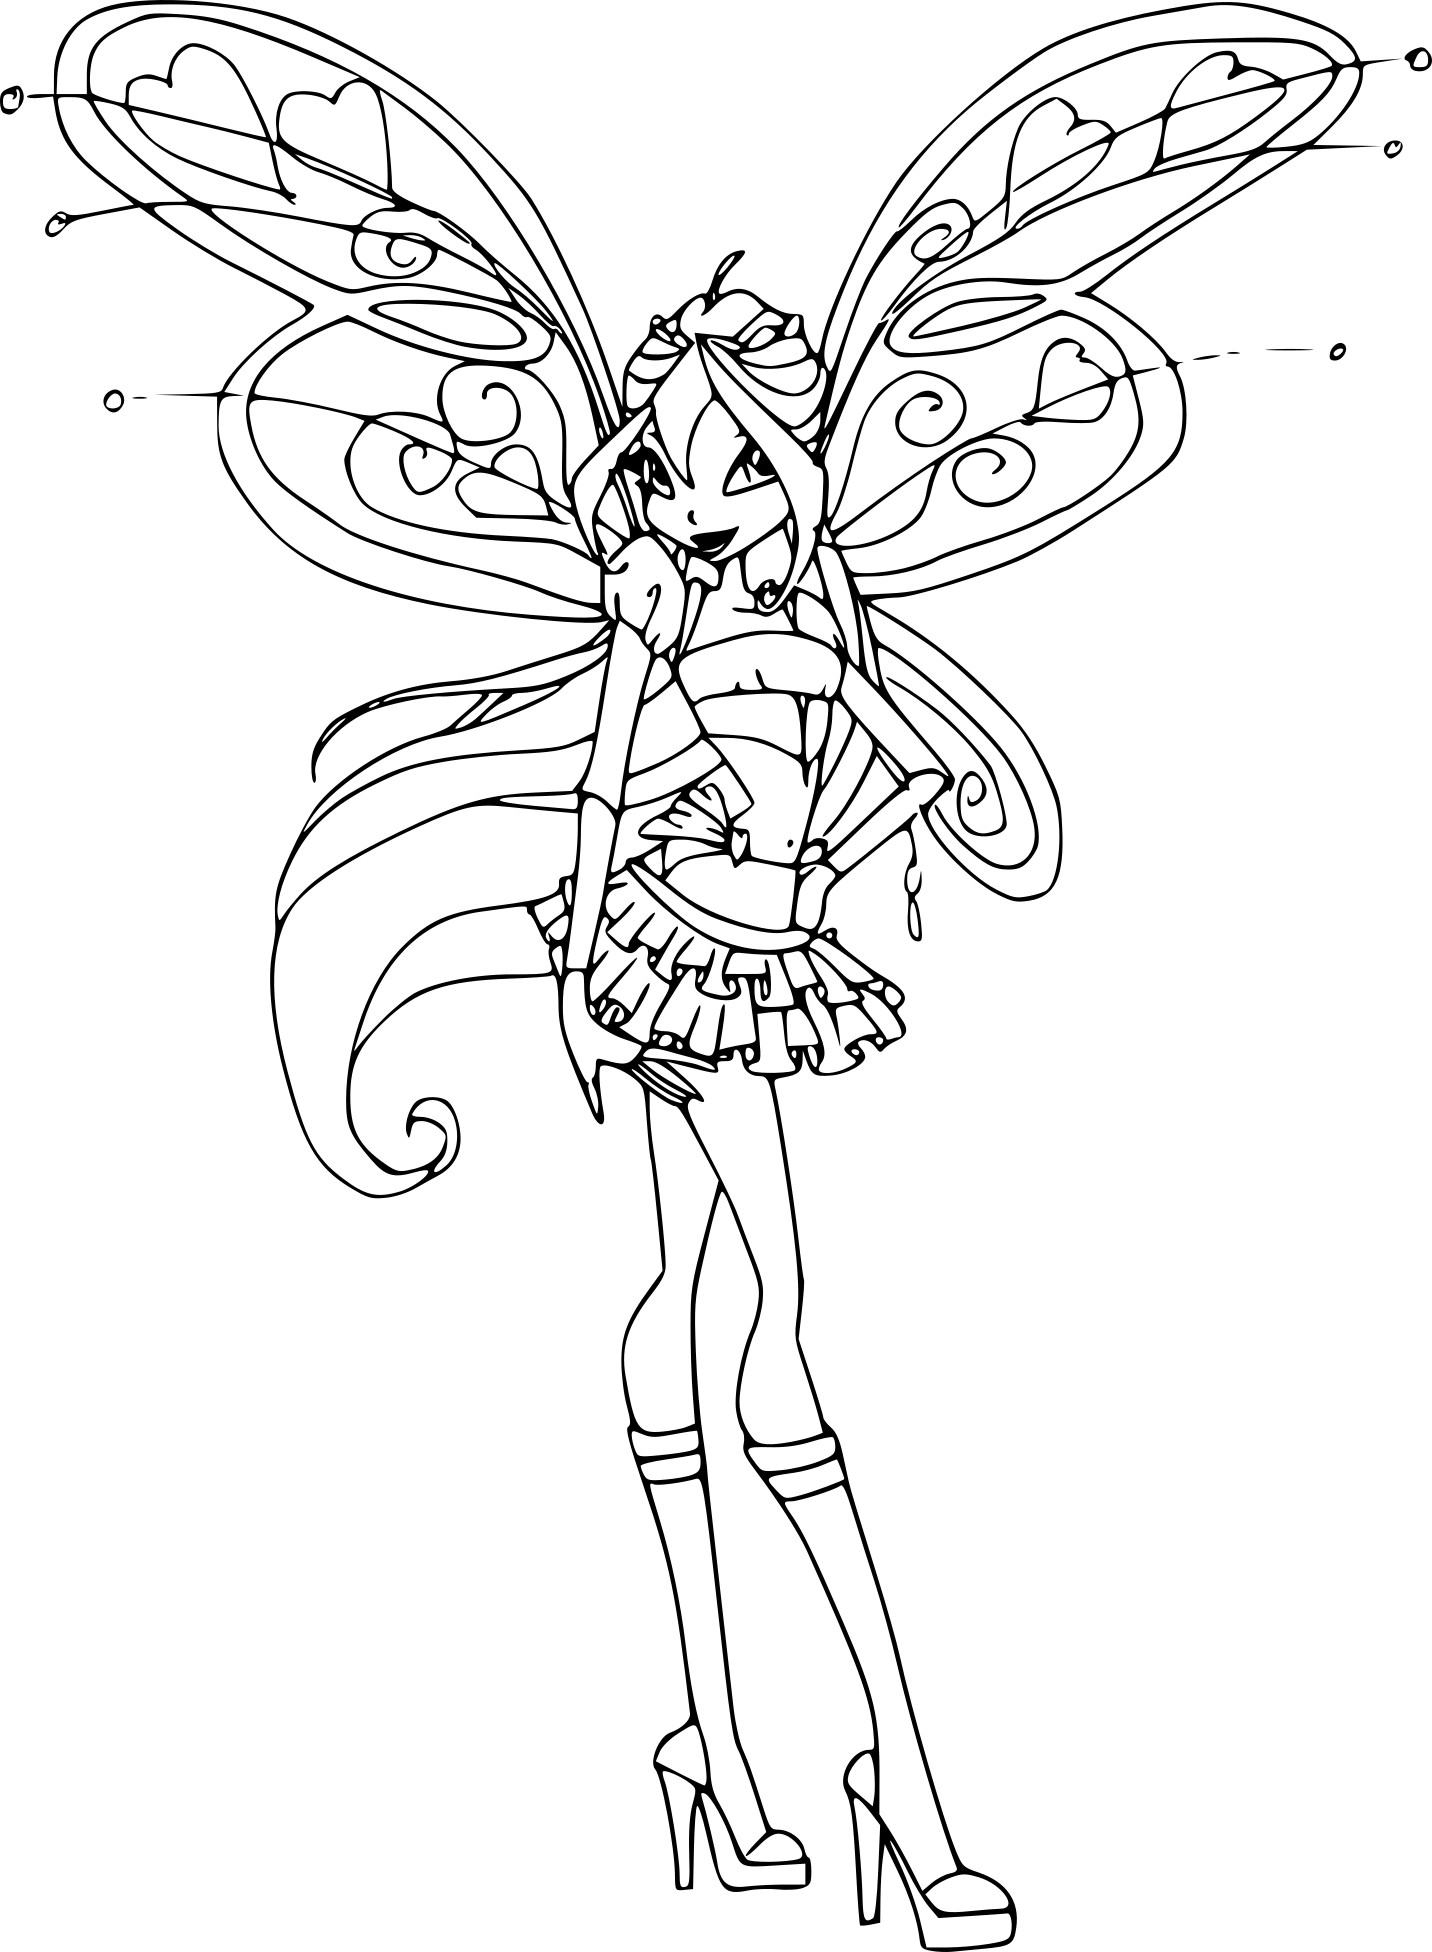 Coloriage bloom believix imprimer - Coloriage winx bloom ...